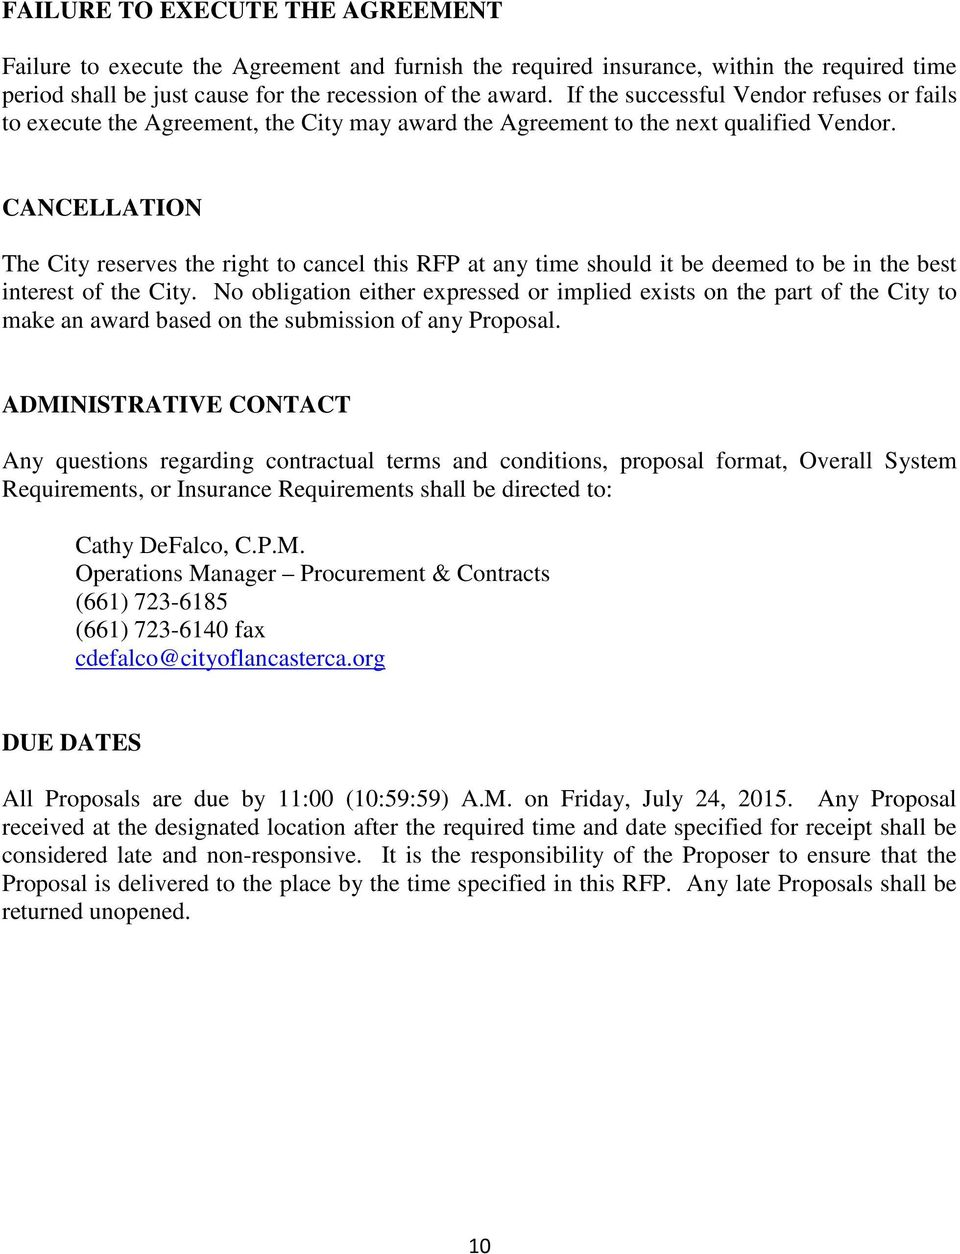 CANCELLATION The City reserves the right to cancel this RFP at any time should it be deemed to be in the best interest of the City.